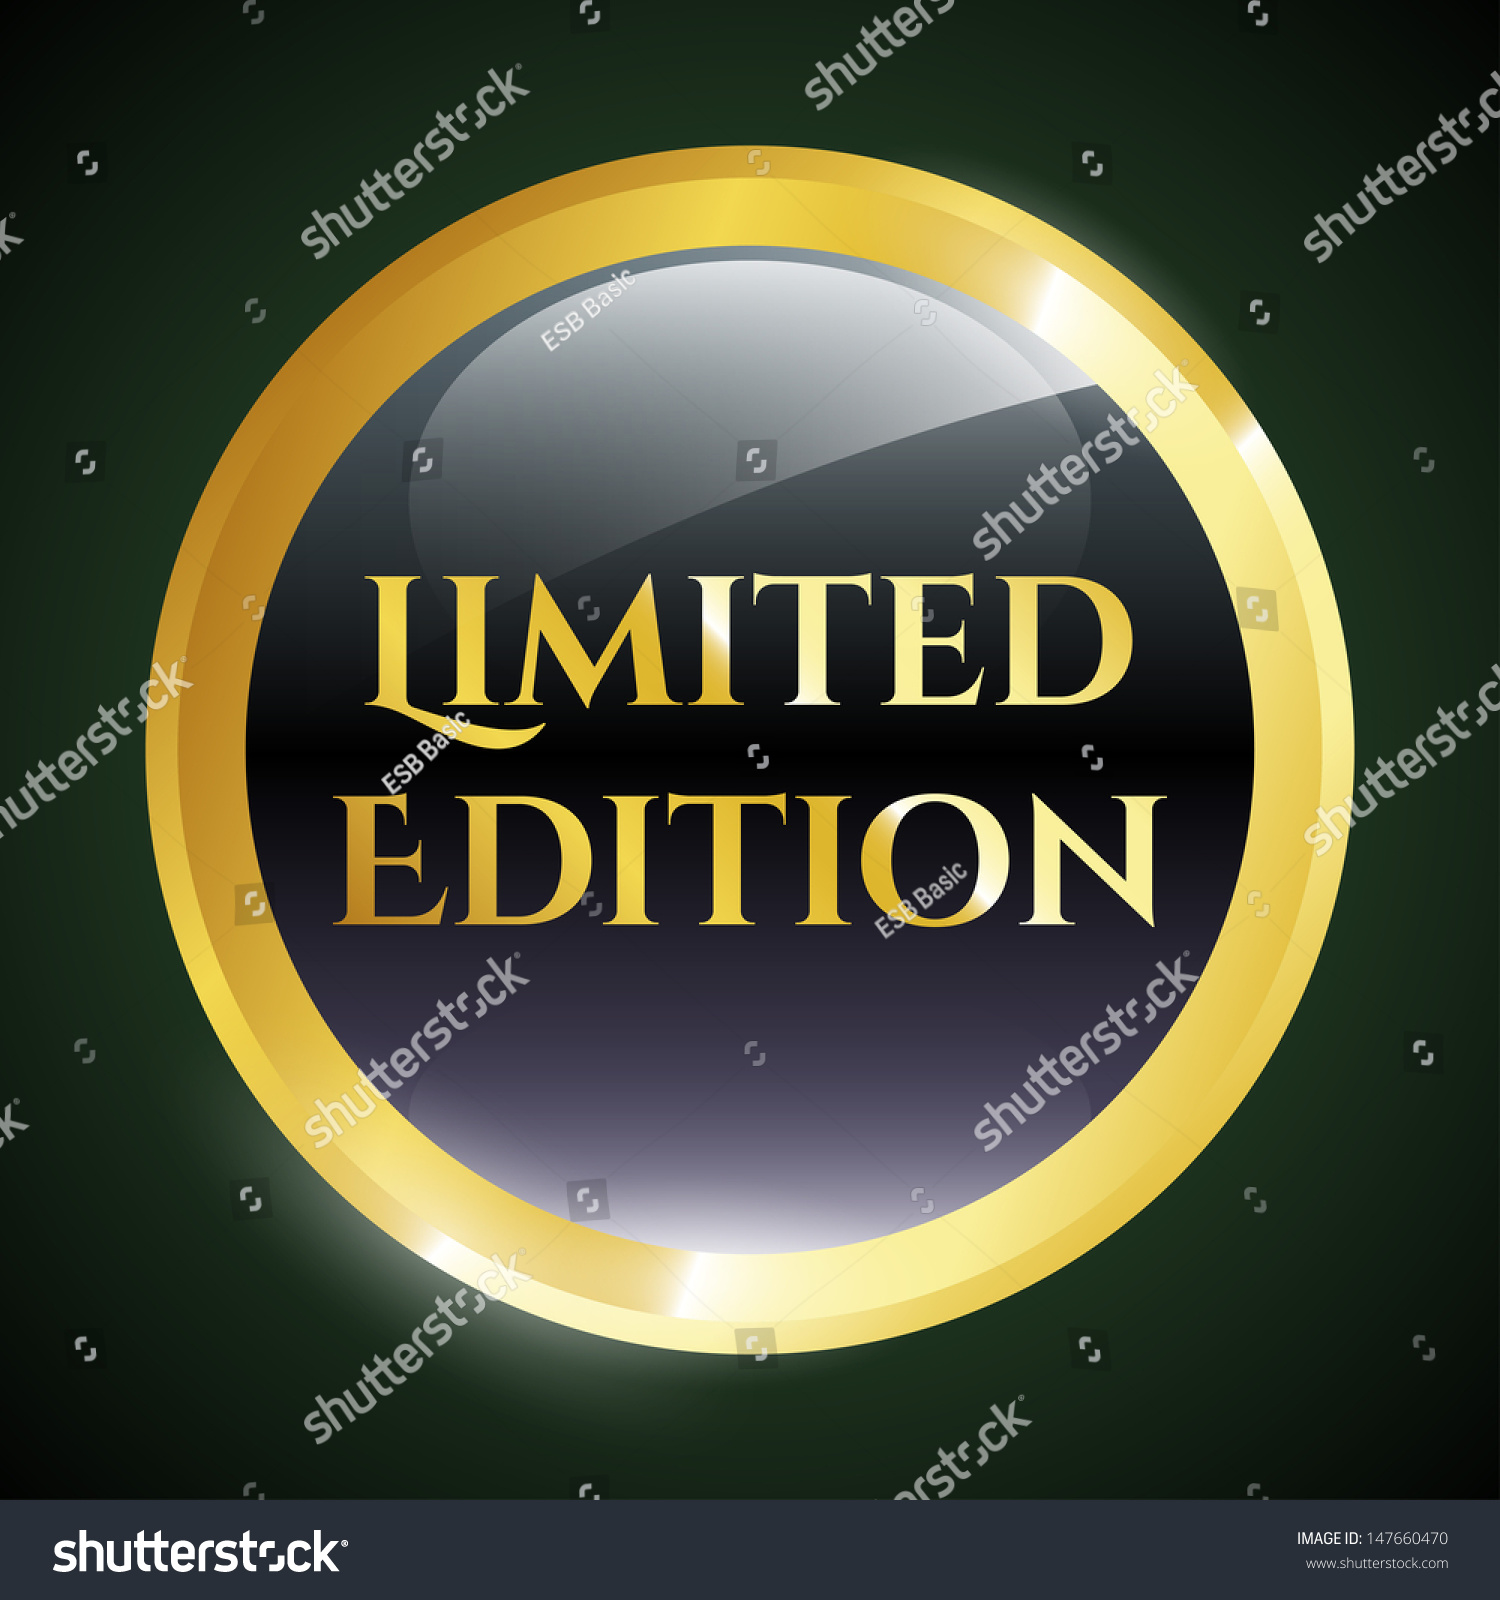 Limited Edition Icon Stock Vector 147660470 - Shutterstock